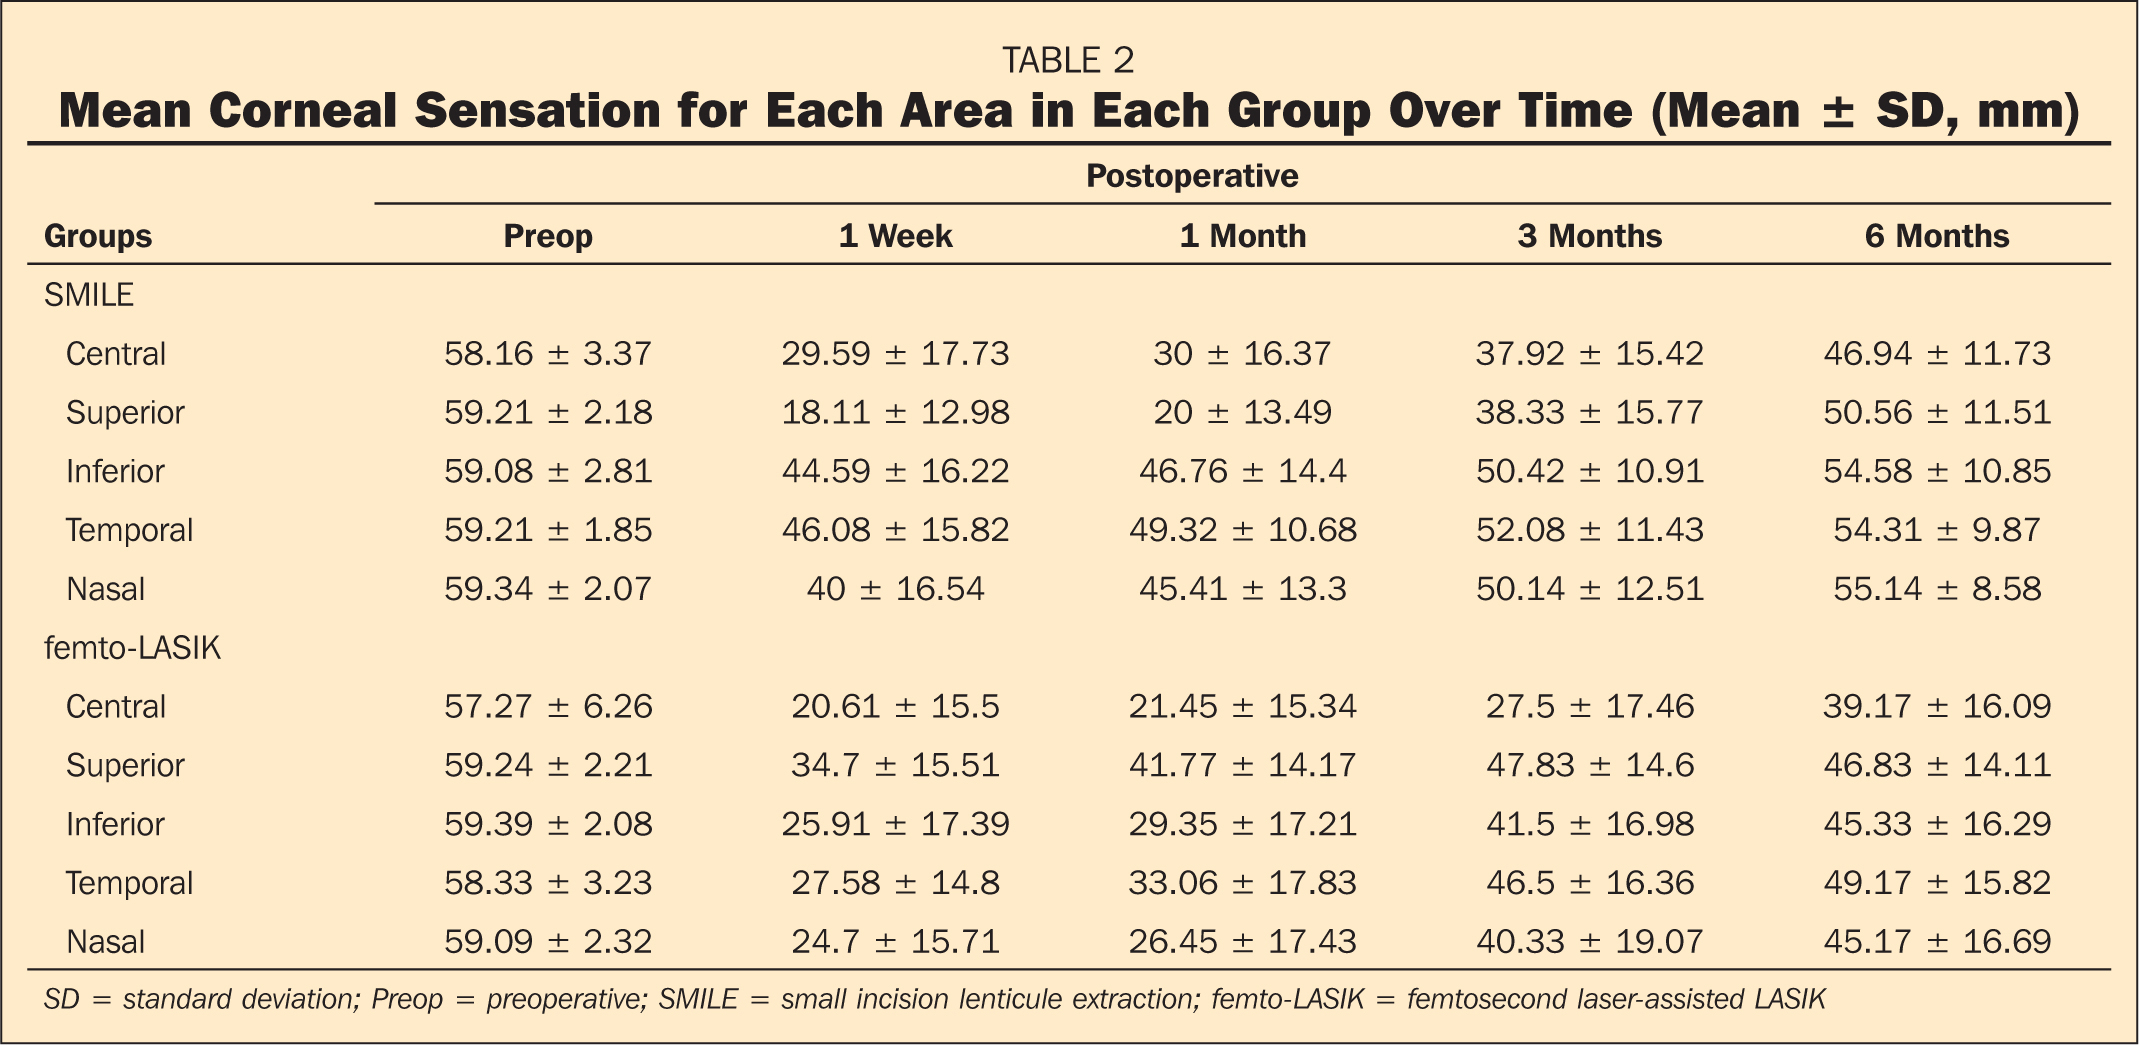 Mean Corneal Sensation for Each Area in Each Group Over Time (Mean ± SD, mm)